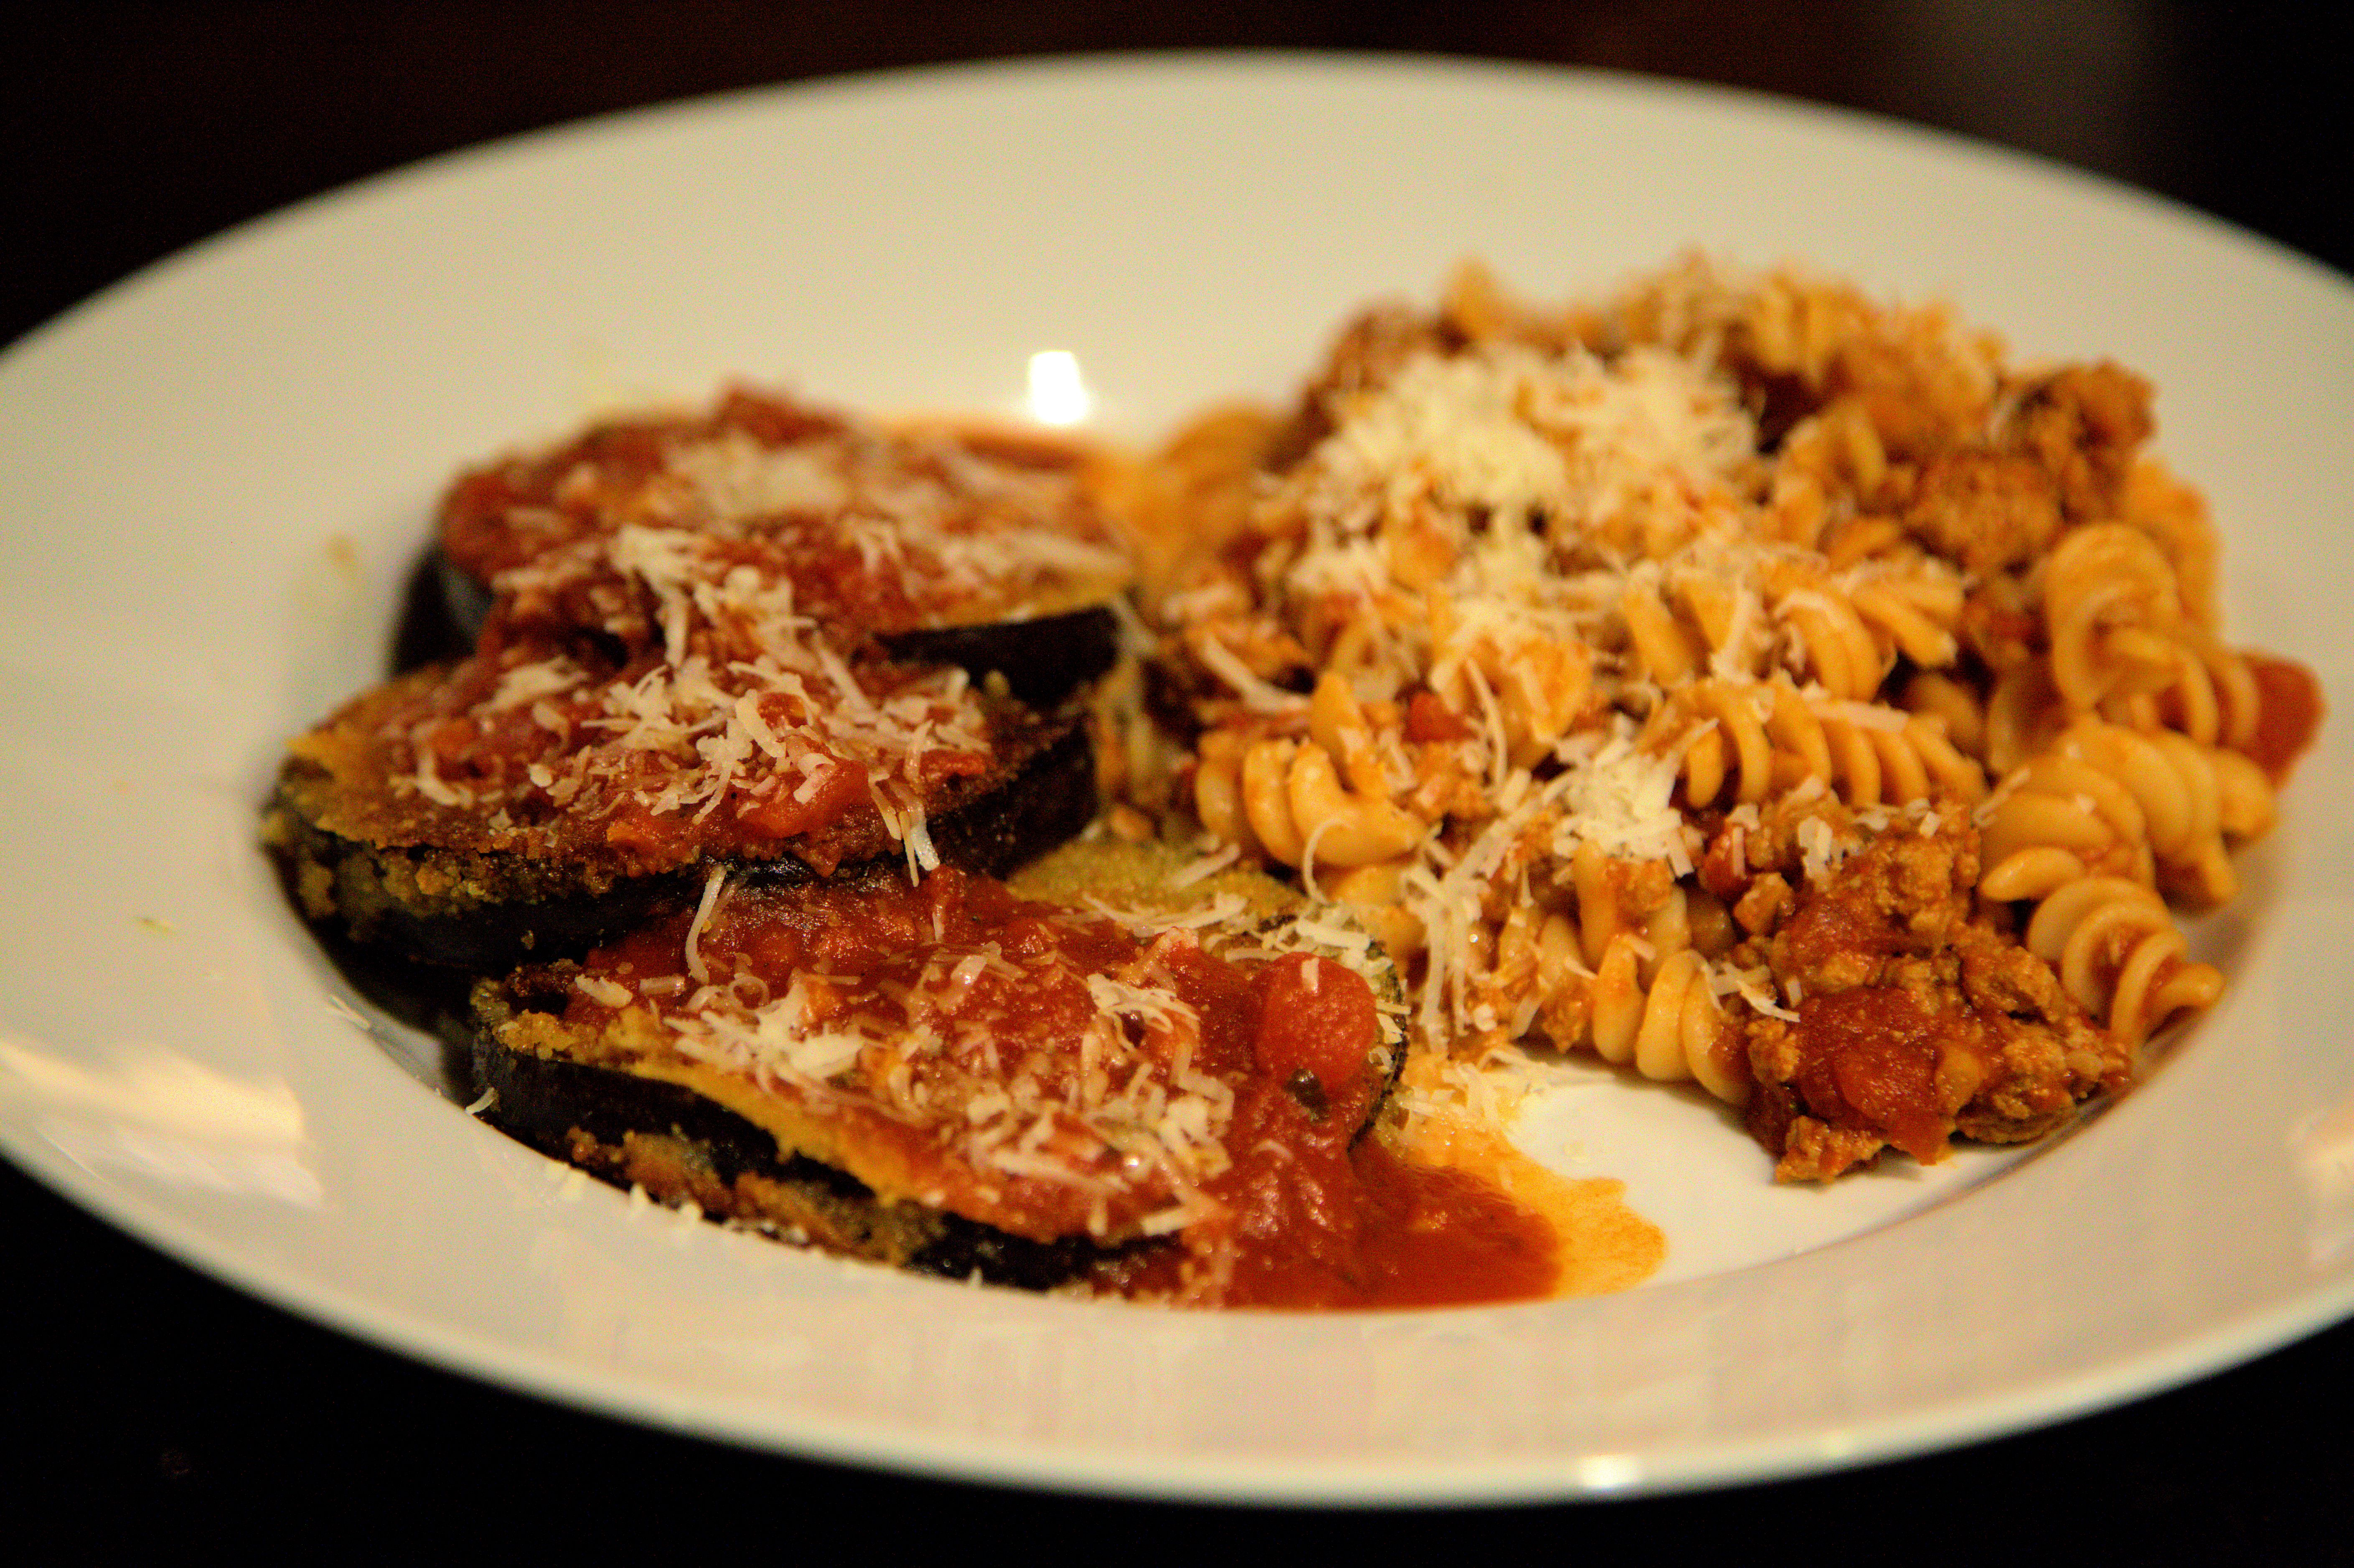 Gluten Free Flavorful Eggplant Parmesan with a side of Meat Sauce ...